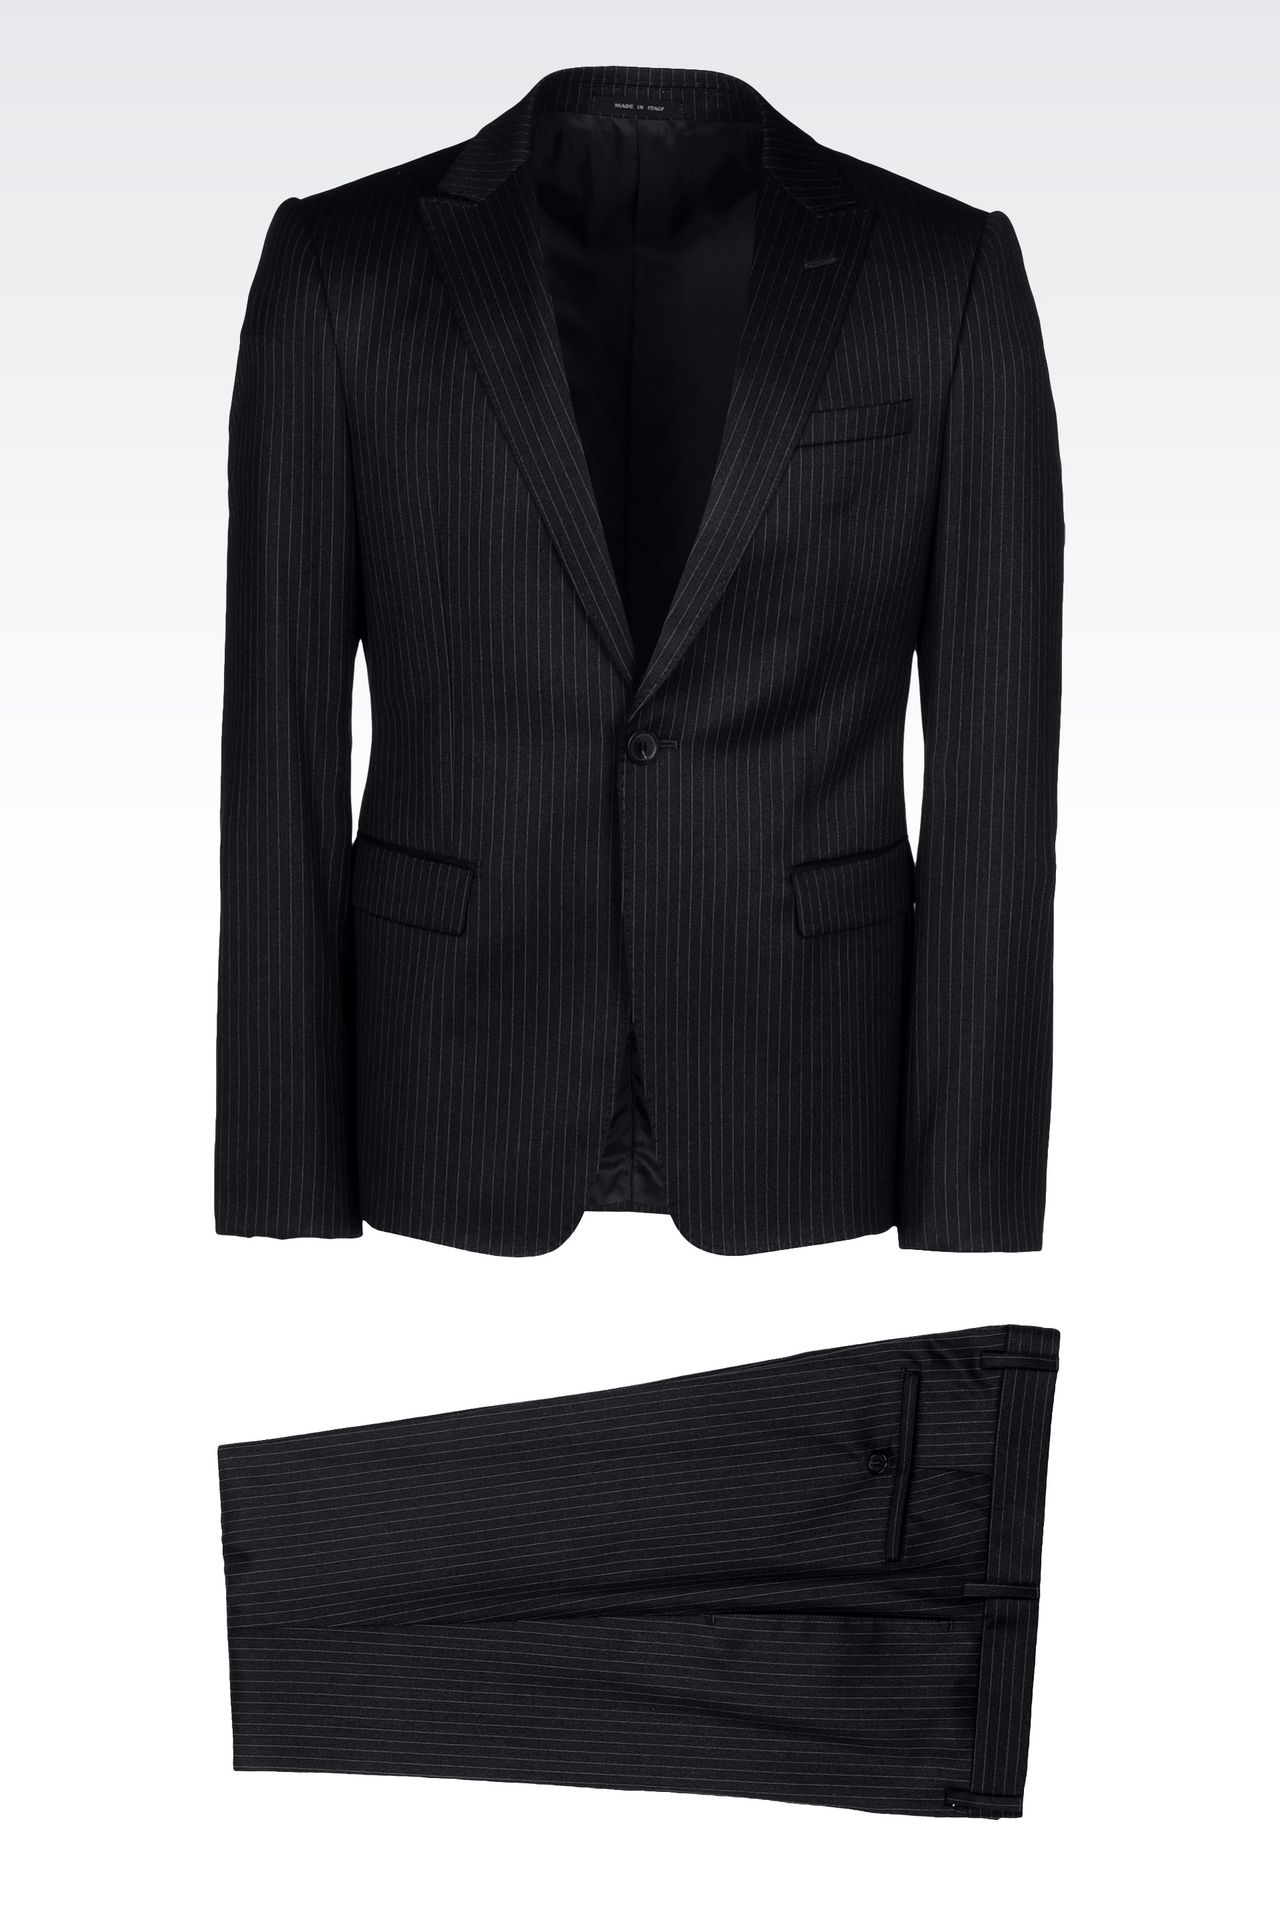 SINGLE-BREASTED SUIT IN CLASSIC PINSTRIPE WOOL: One button suits Men by Armani - 0